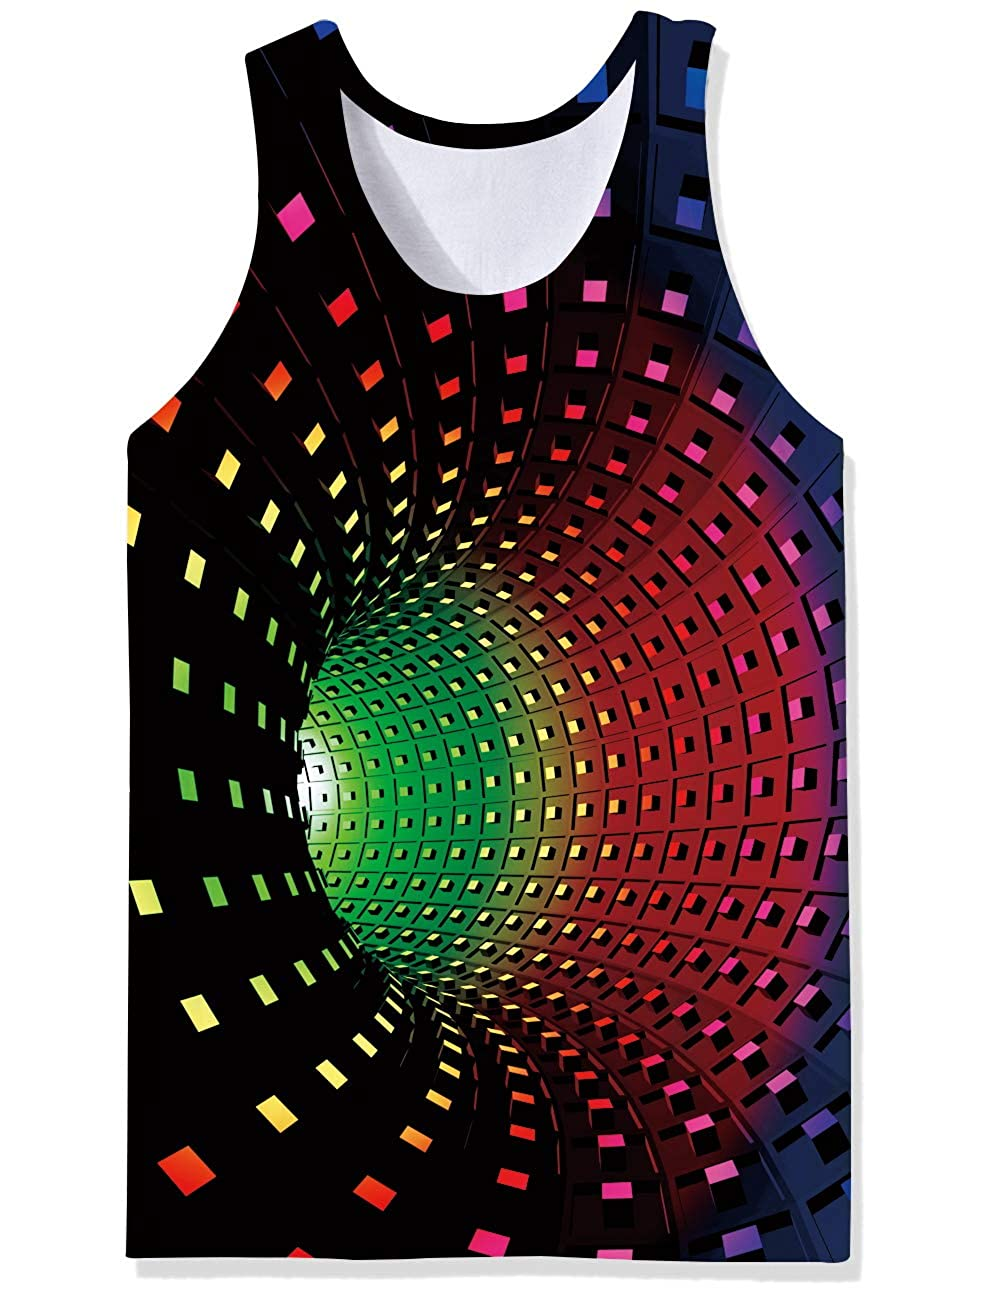 uideazone Mens Tank Top Casual 3D Printed Patterns Graphics Tees Cool Sleeveless T-Shirts